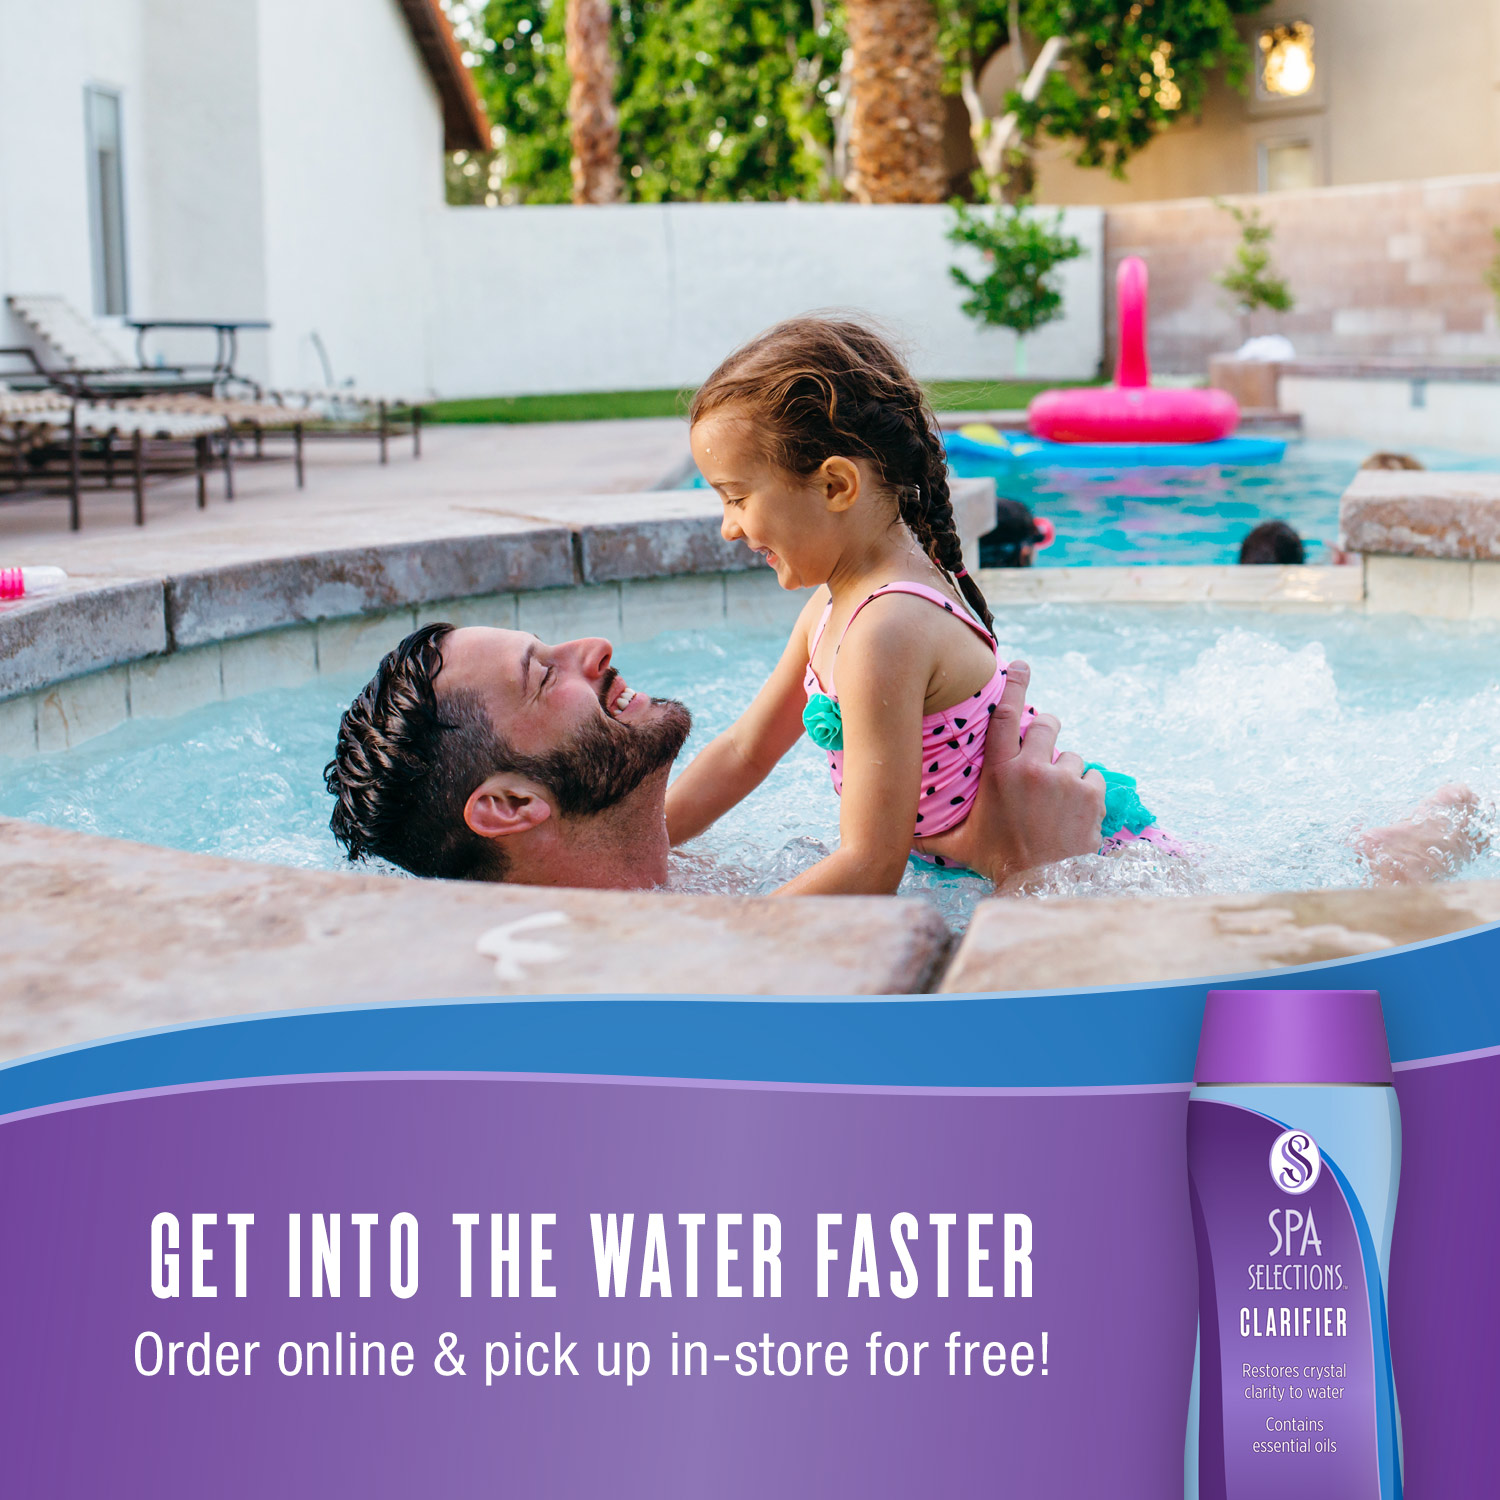 Father and daughter enjoying outdoor hot tub. Get into the water faster with Spa Selections Clarifier, order online and pick up in-store for free!